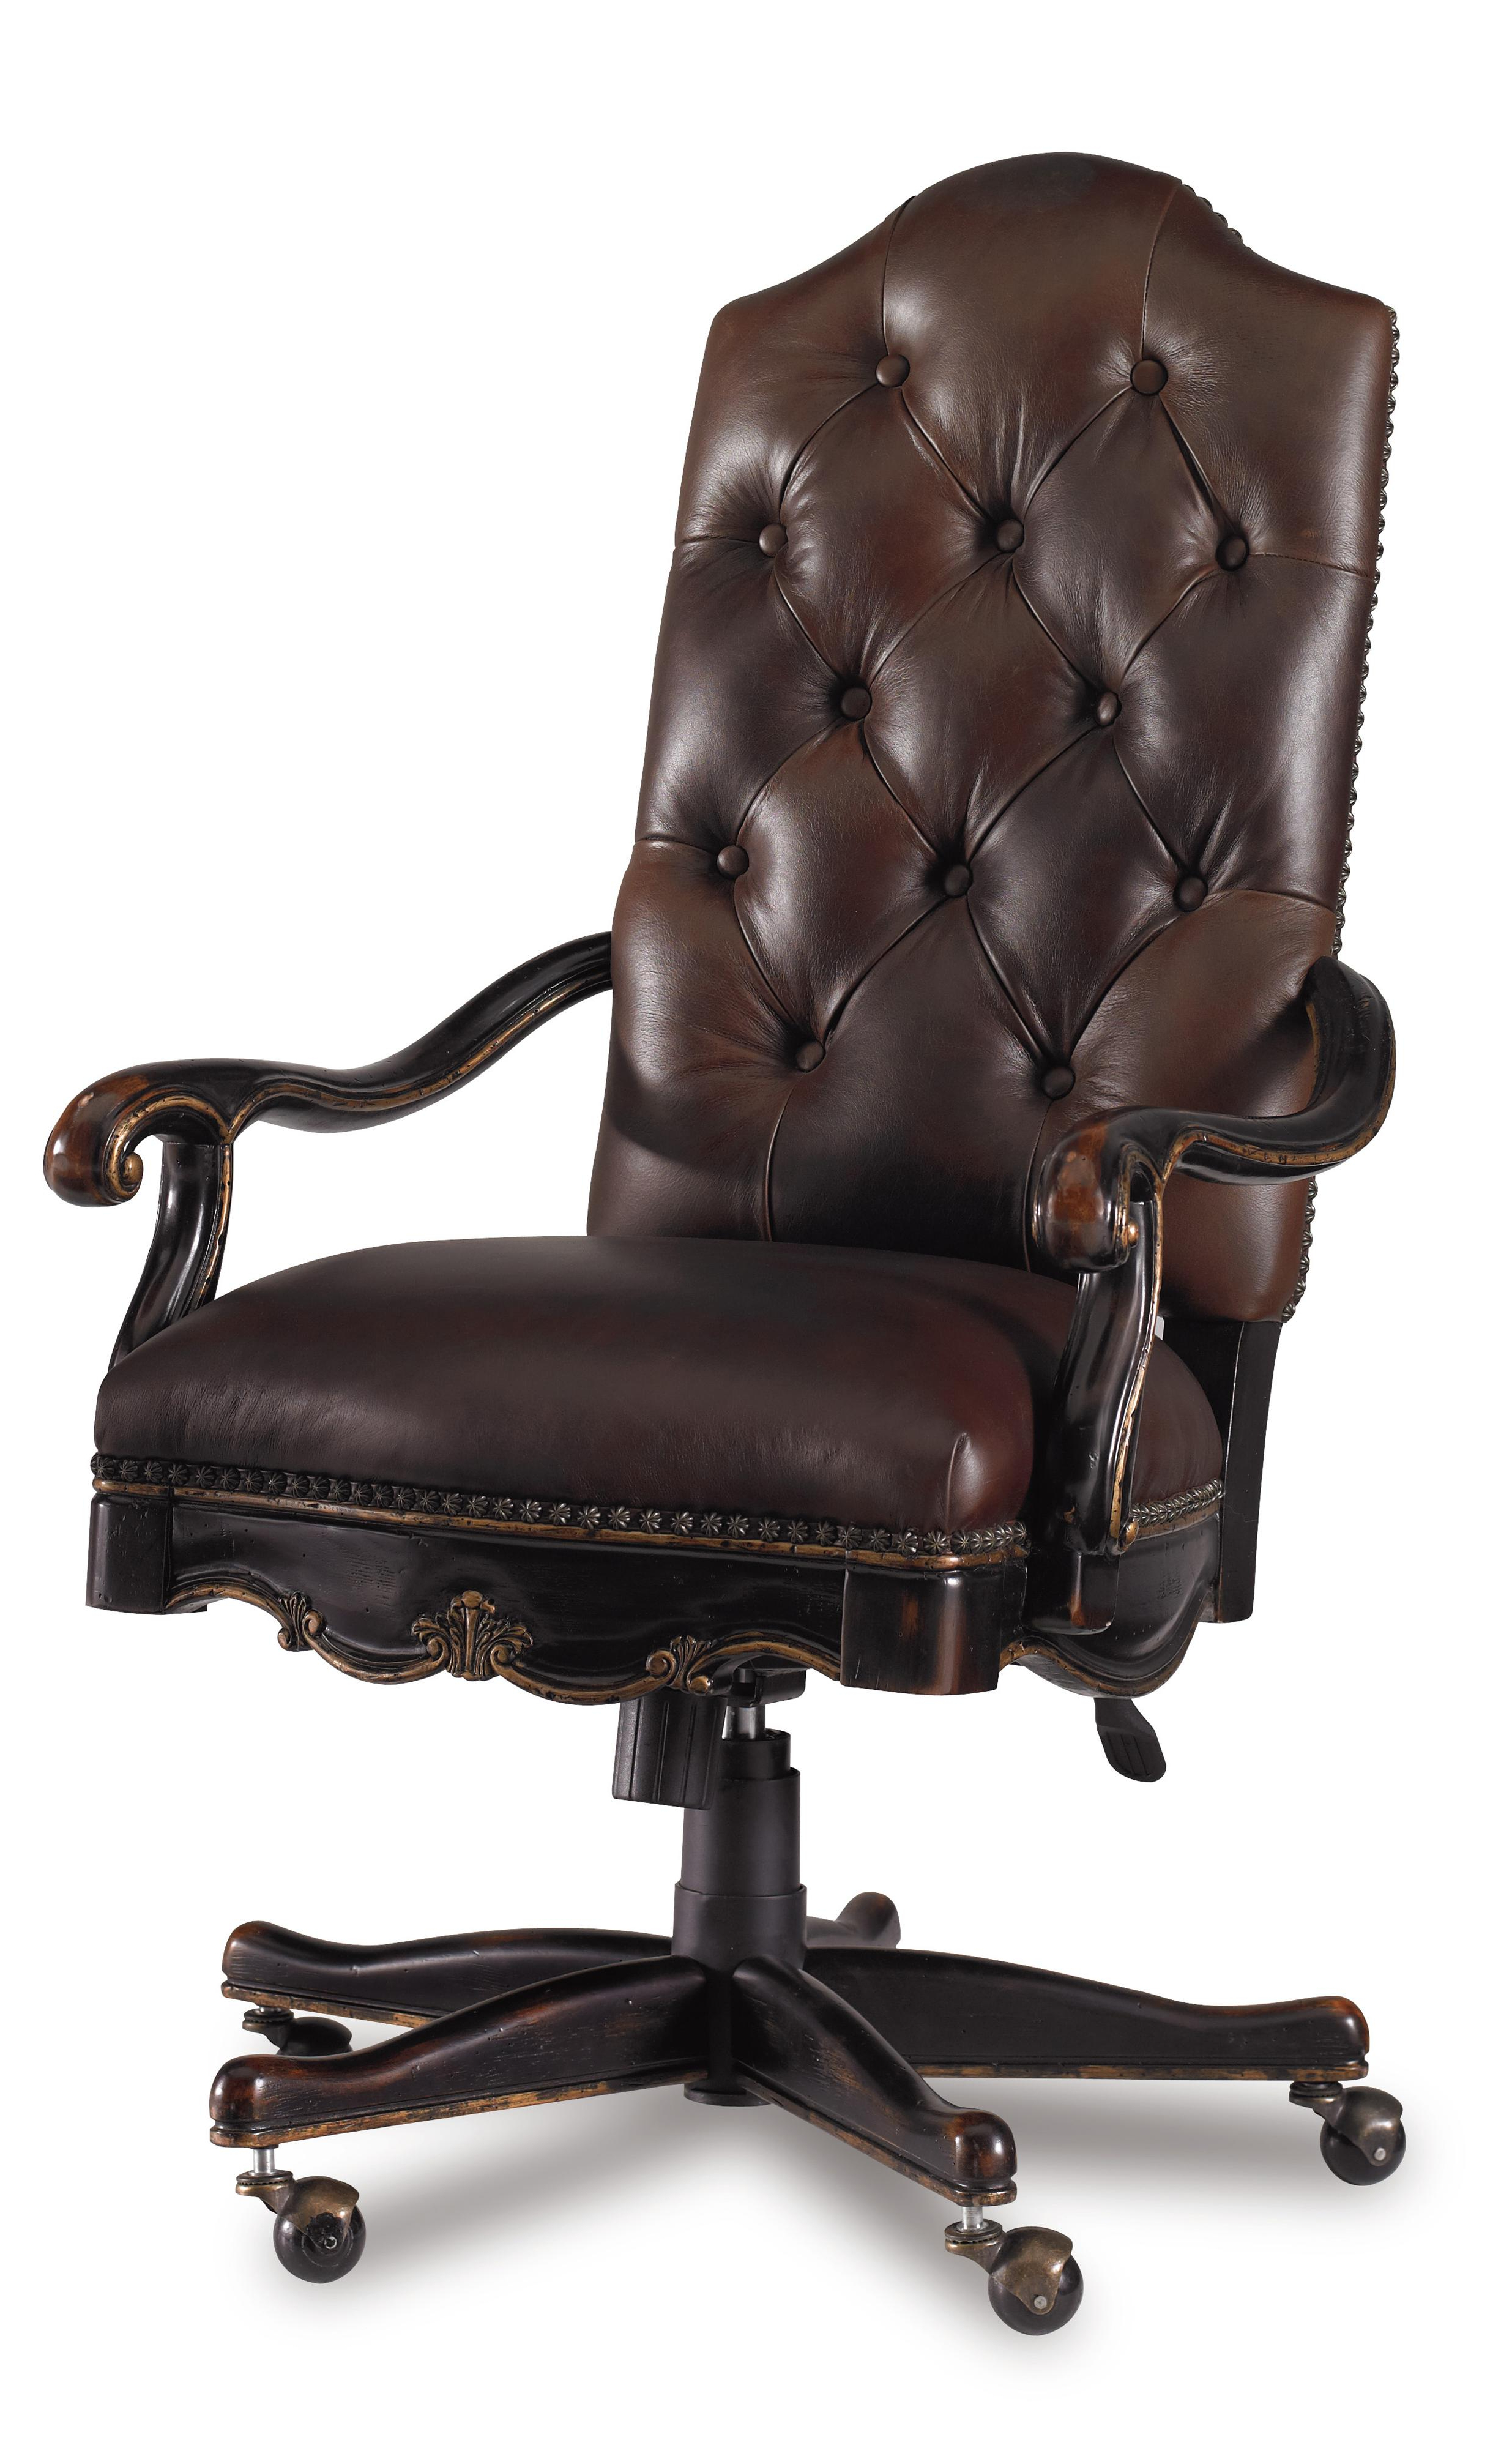 Most Popular Chocolate Brown Leather Tufted Swivel Chairs Pertaining To Hooker Furniture Grandover Tufted Leather Executive Office Chair (Gallery 14 of 20)